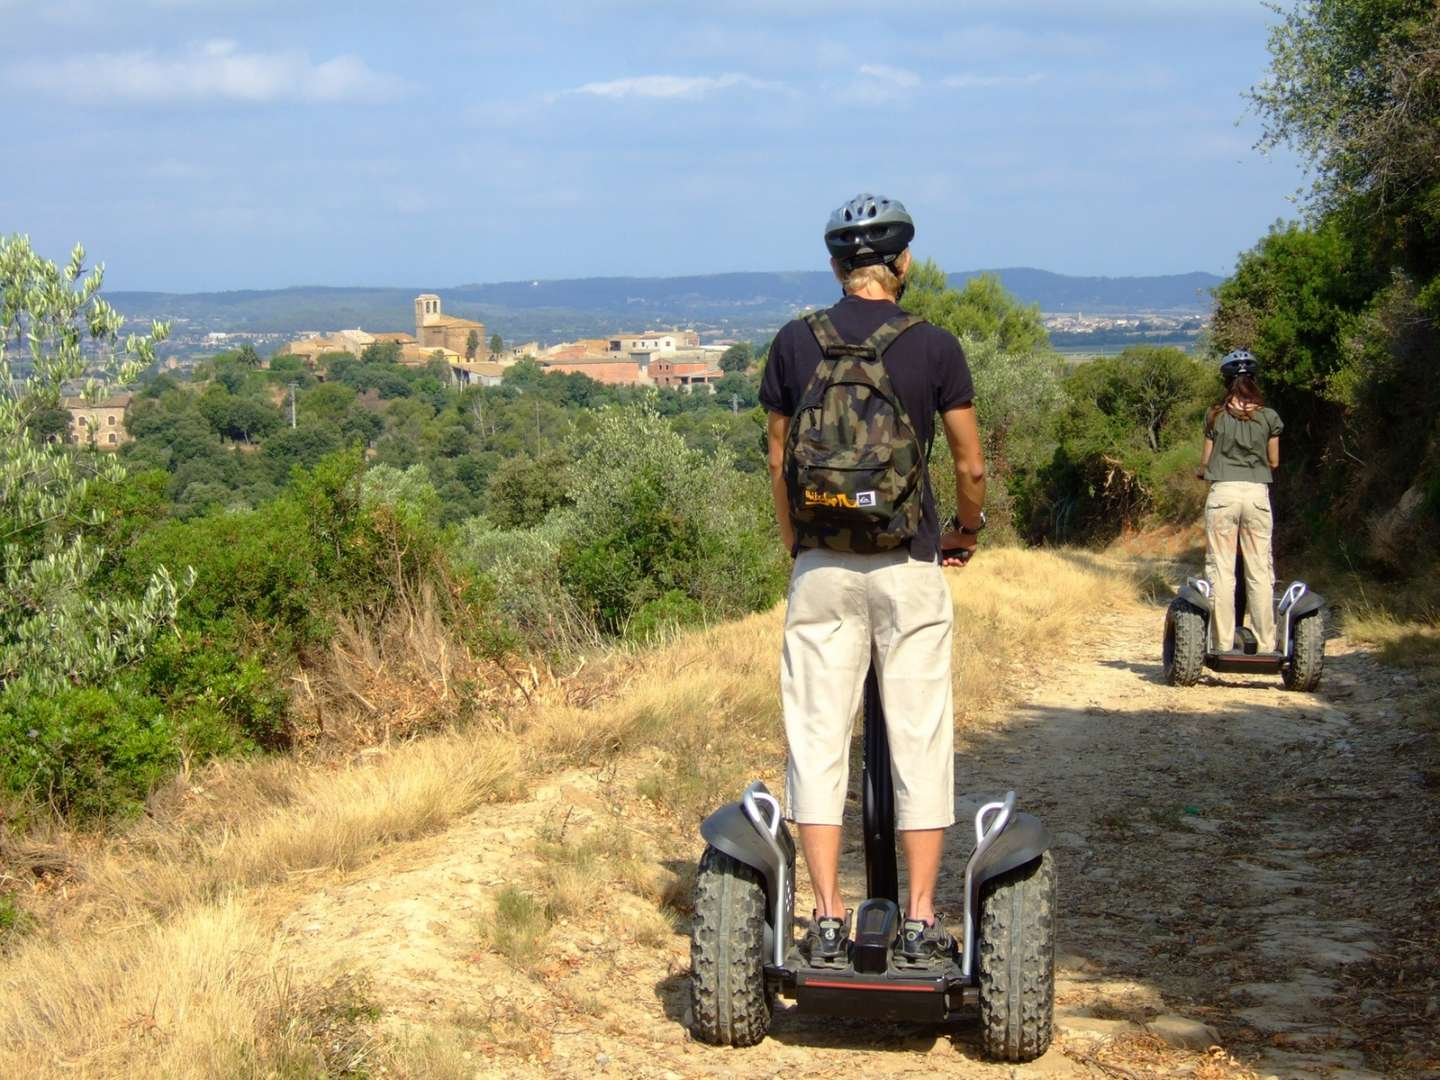 Ruta de l'estany d'Ullastret amb segway<br /><strong>Sortida: 11.00h <strong class='extra_info_articulo'>- desde 32.00 €  </strong></strong>